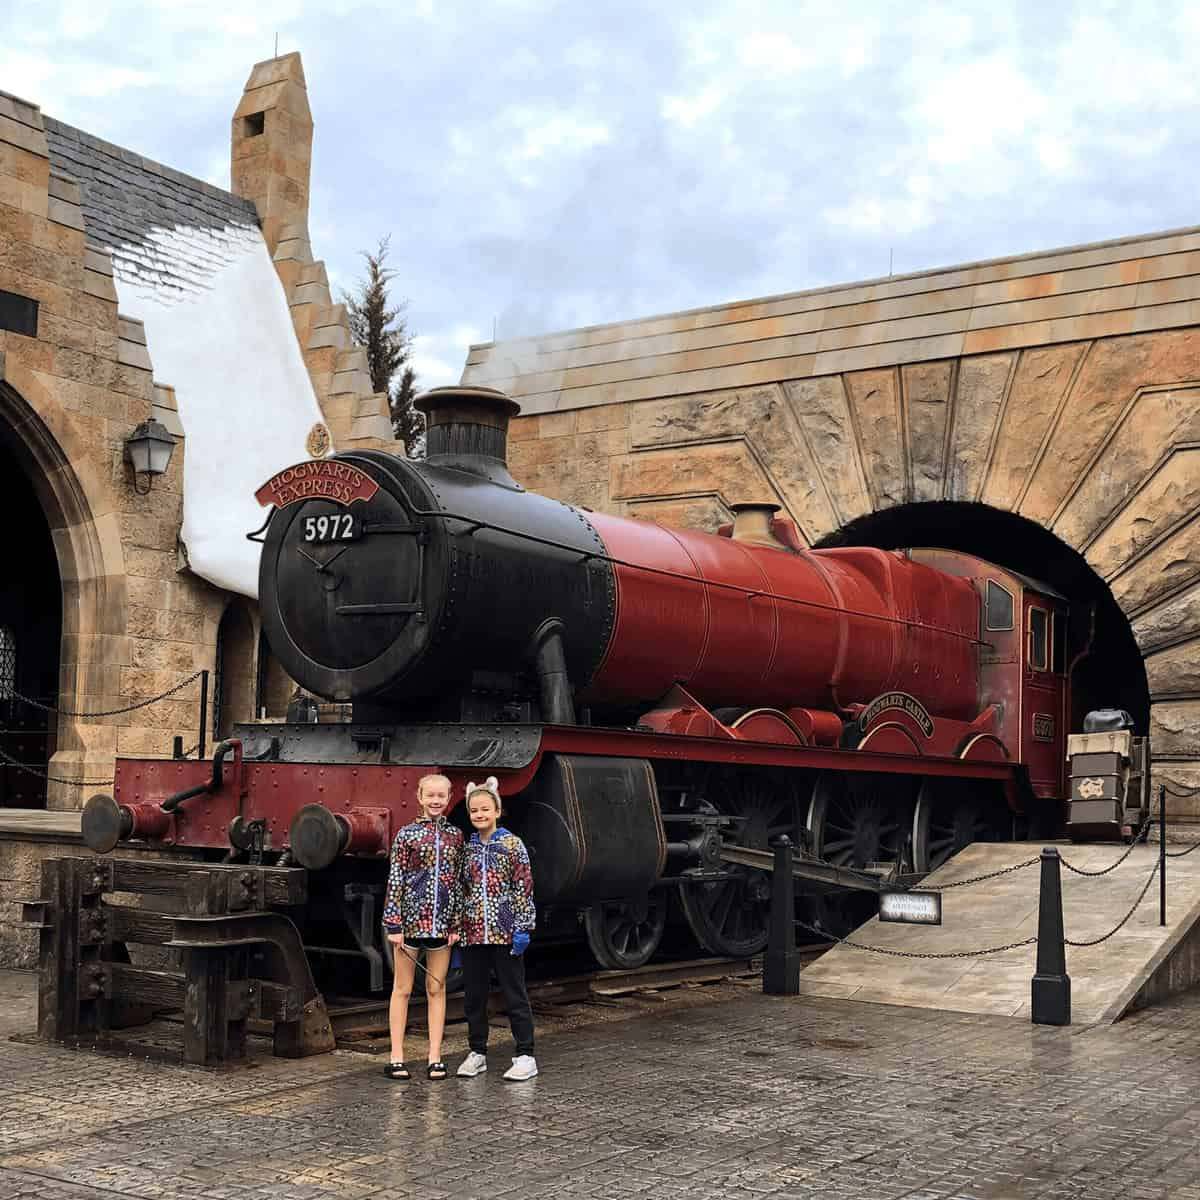 Wizarding World of Harry Potter Tips - Universal Orlando Tips: Should you get the Universal Express Unlimited? Is Universals early entry worth it? Compare Universal Studio hotels and more. Great mom-to-mom tips for planning your family vacation to Orlando. #HarryPotterWorld #UniversalOrlando #FamilyTravel #UniversalStudios #Orlando #Florida *Pinning this REAL parent advice for our trip! So helpful. Cannot wait to see the Hogwarts Express and Platform 9 3/4.